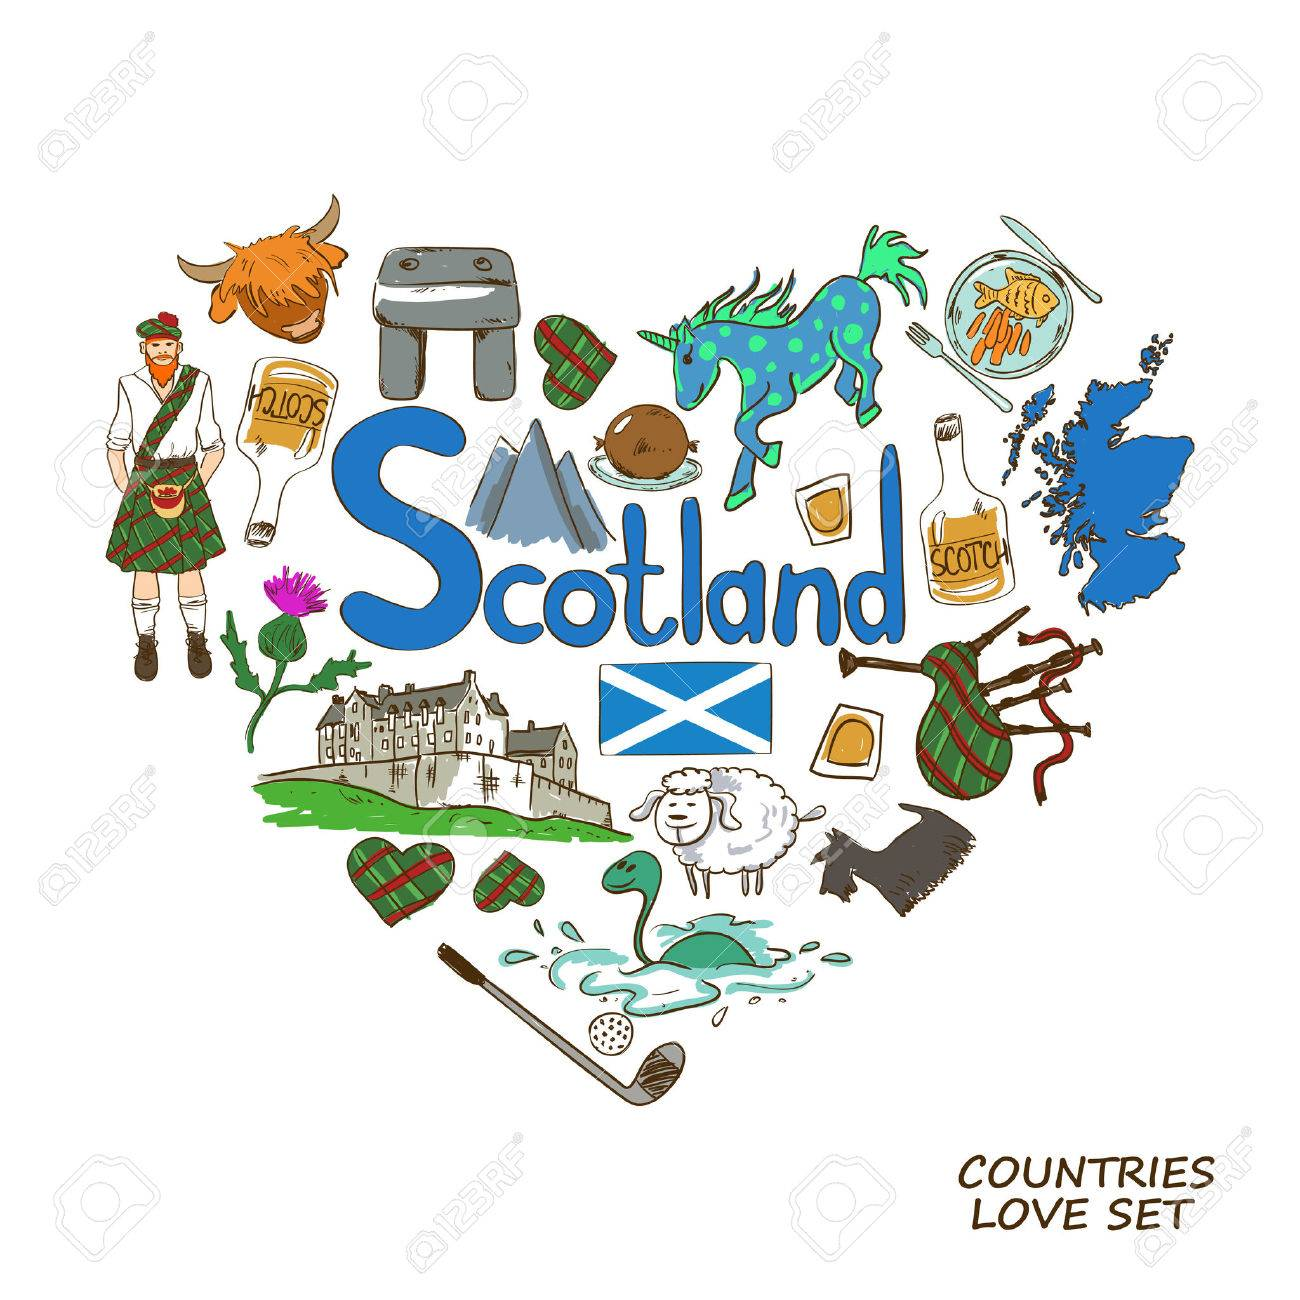 Colorful sketch collection of scottish symbols heart shape concept colorful sketch collection of scottish symbols heart shape concept scotland travel background stock buycottarizona Image collections